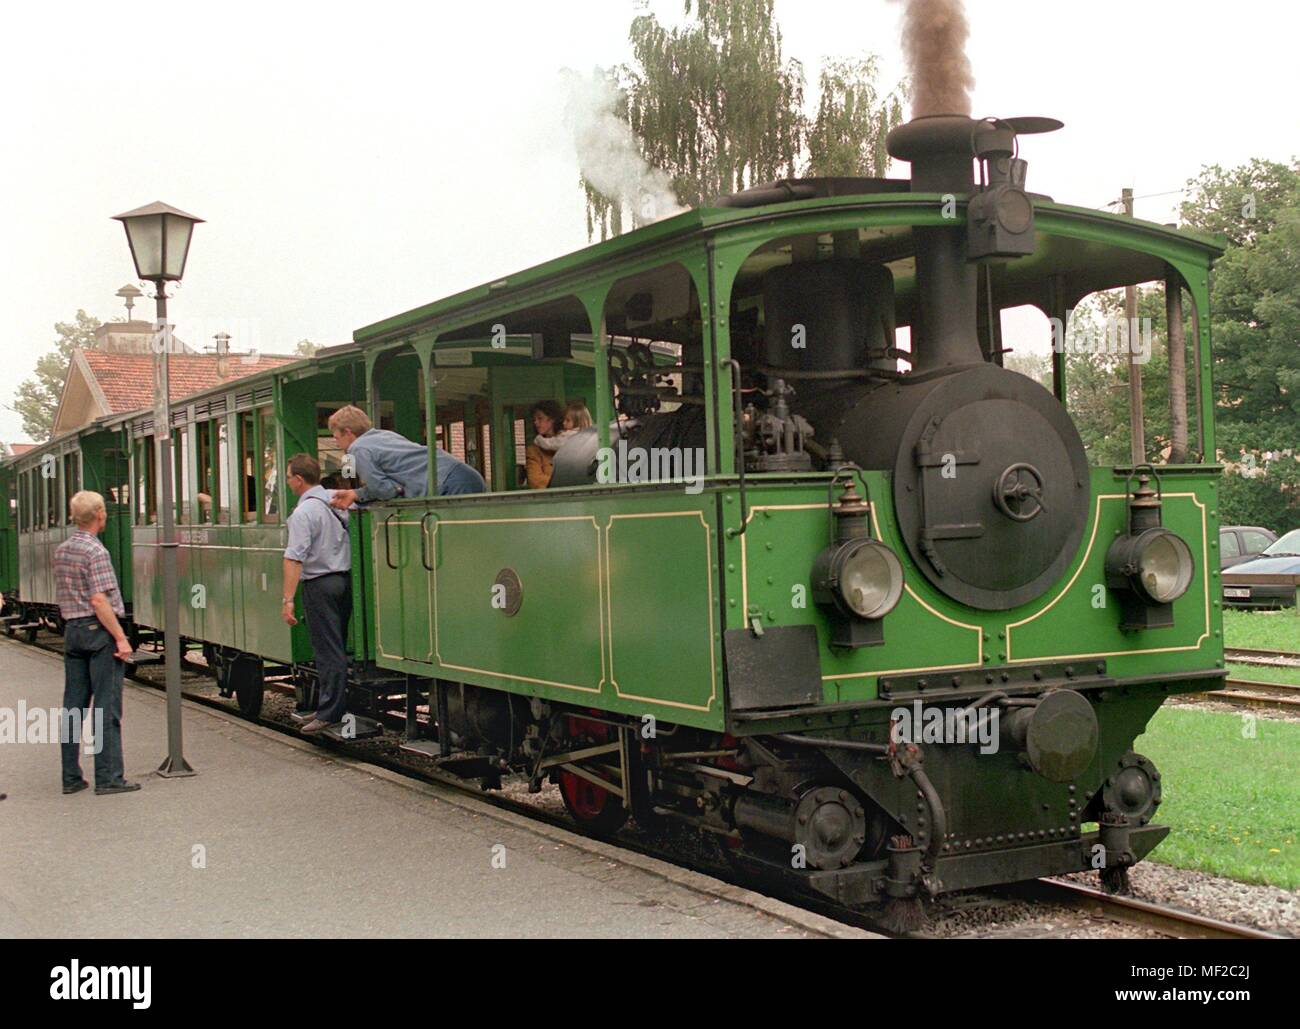 A functioning technical monument is the nostalgic Chiemseebahn, which steams on passengers in the harbor area of Stock am Chiemsee on 4.8.1998. The 111-year railway line connects the station of Prien with the dock of the Chiemsee ships in the district of Stock. The locomotive, a tramway locomotive, is the last of its kind in regular service. Once these machines, as precursors of the electric tram, were moving through the big cities. Due to the high maintenance costs, this tourist attraction is at the end of this season threatened by the setting. | usage worldwide Stock Photo